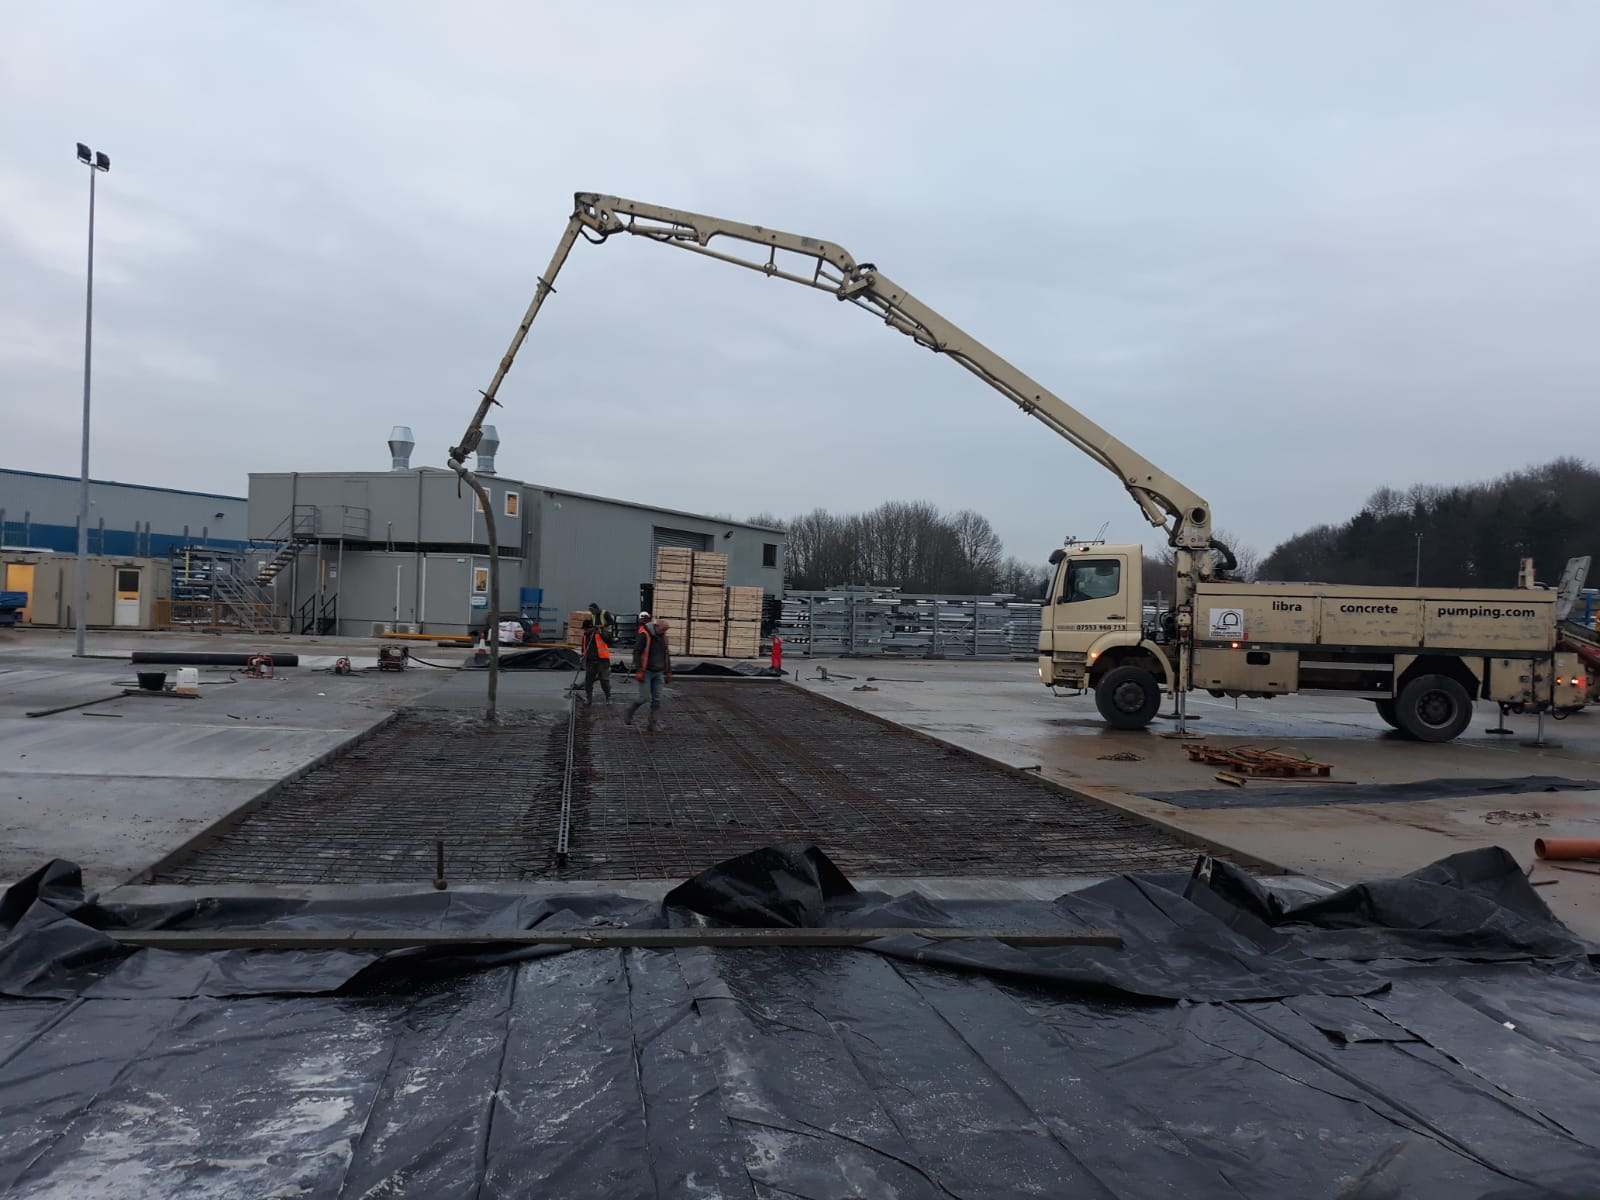 Concrete Pump Hire | Peterborough - Libra Concrete Pumping